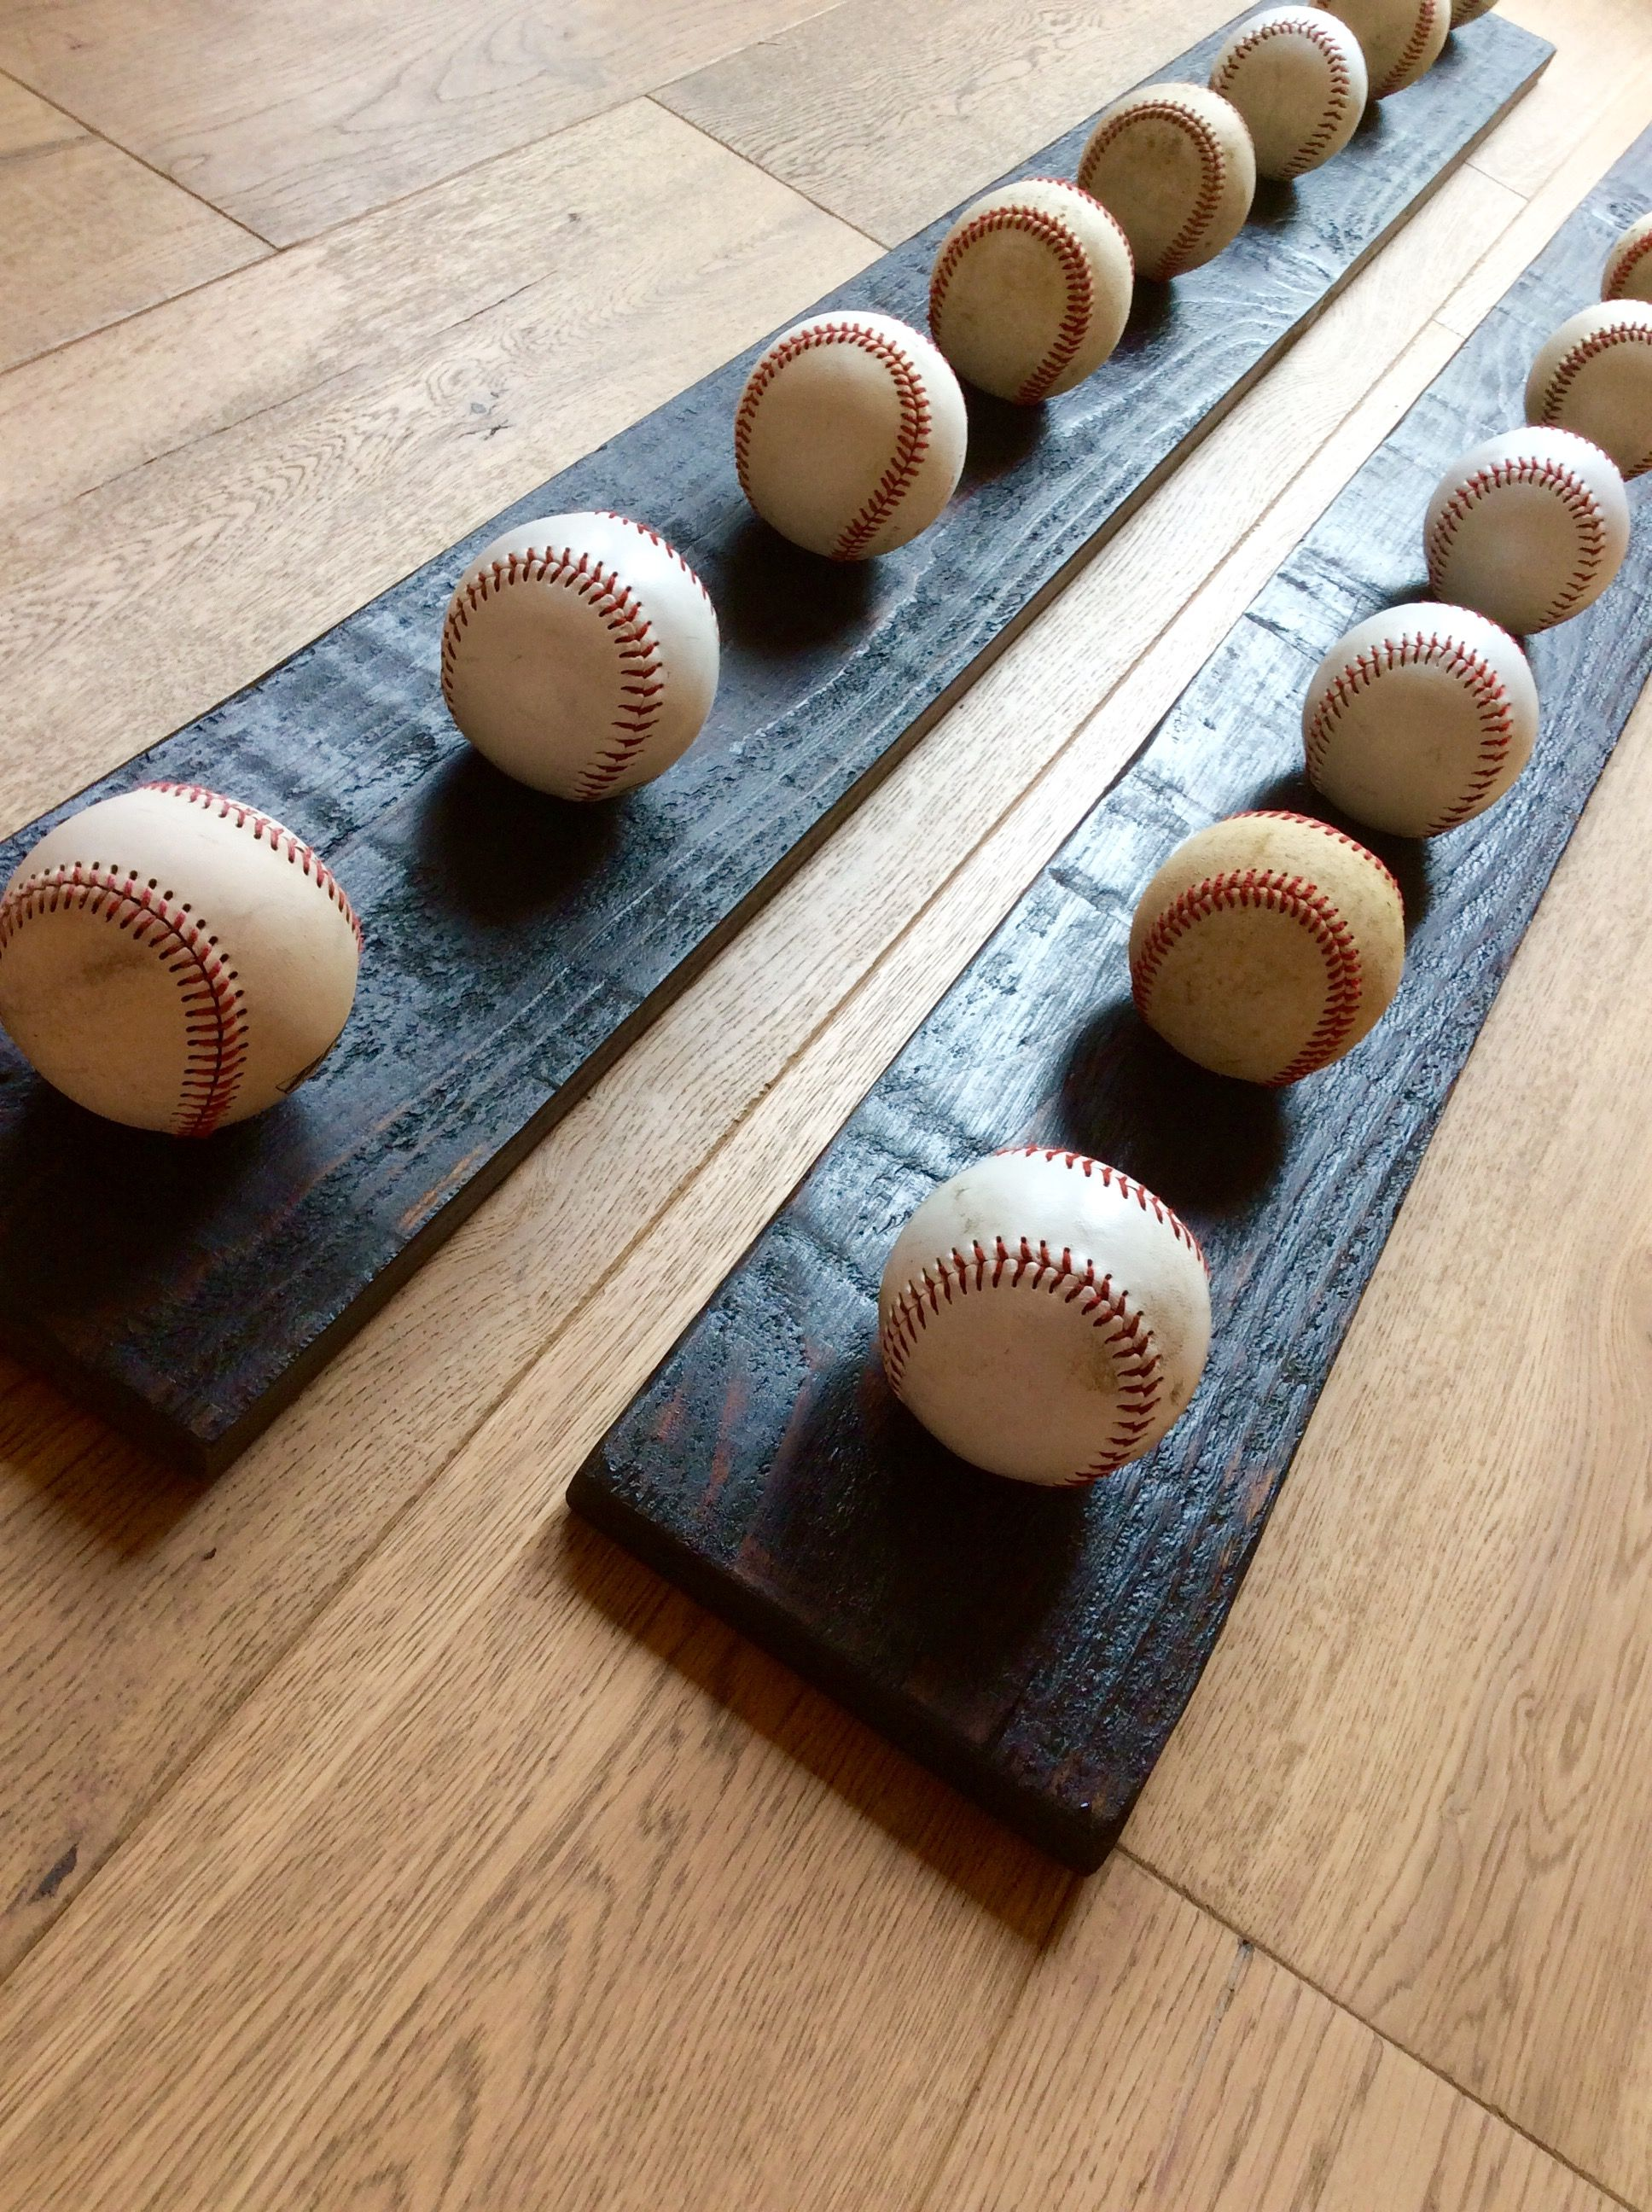 Baseball Hat Rack Made From Reclaimed Wood And Weathered Baseballs To Order Your Own Custom